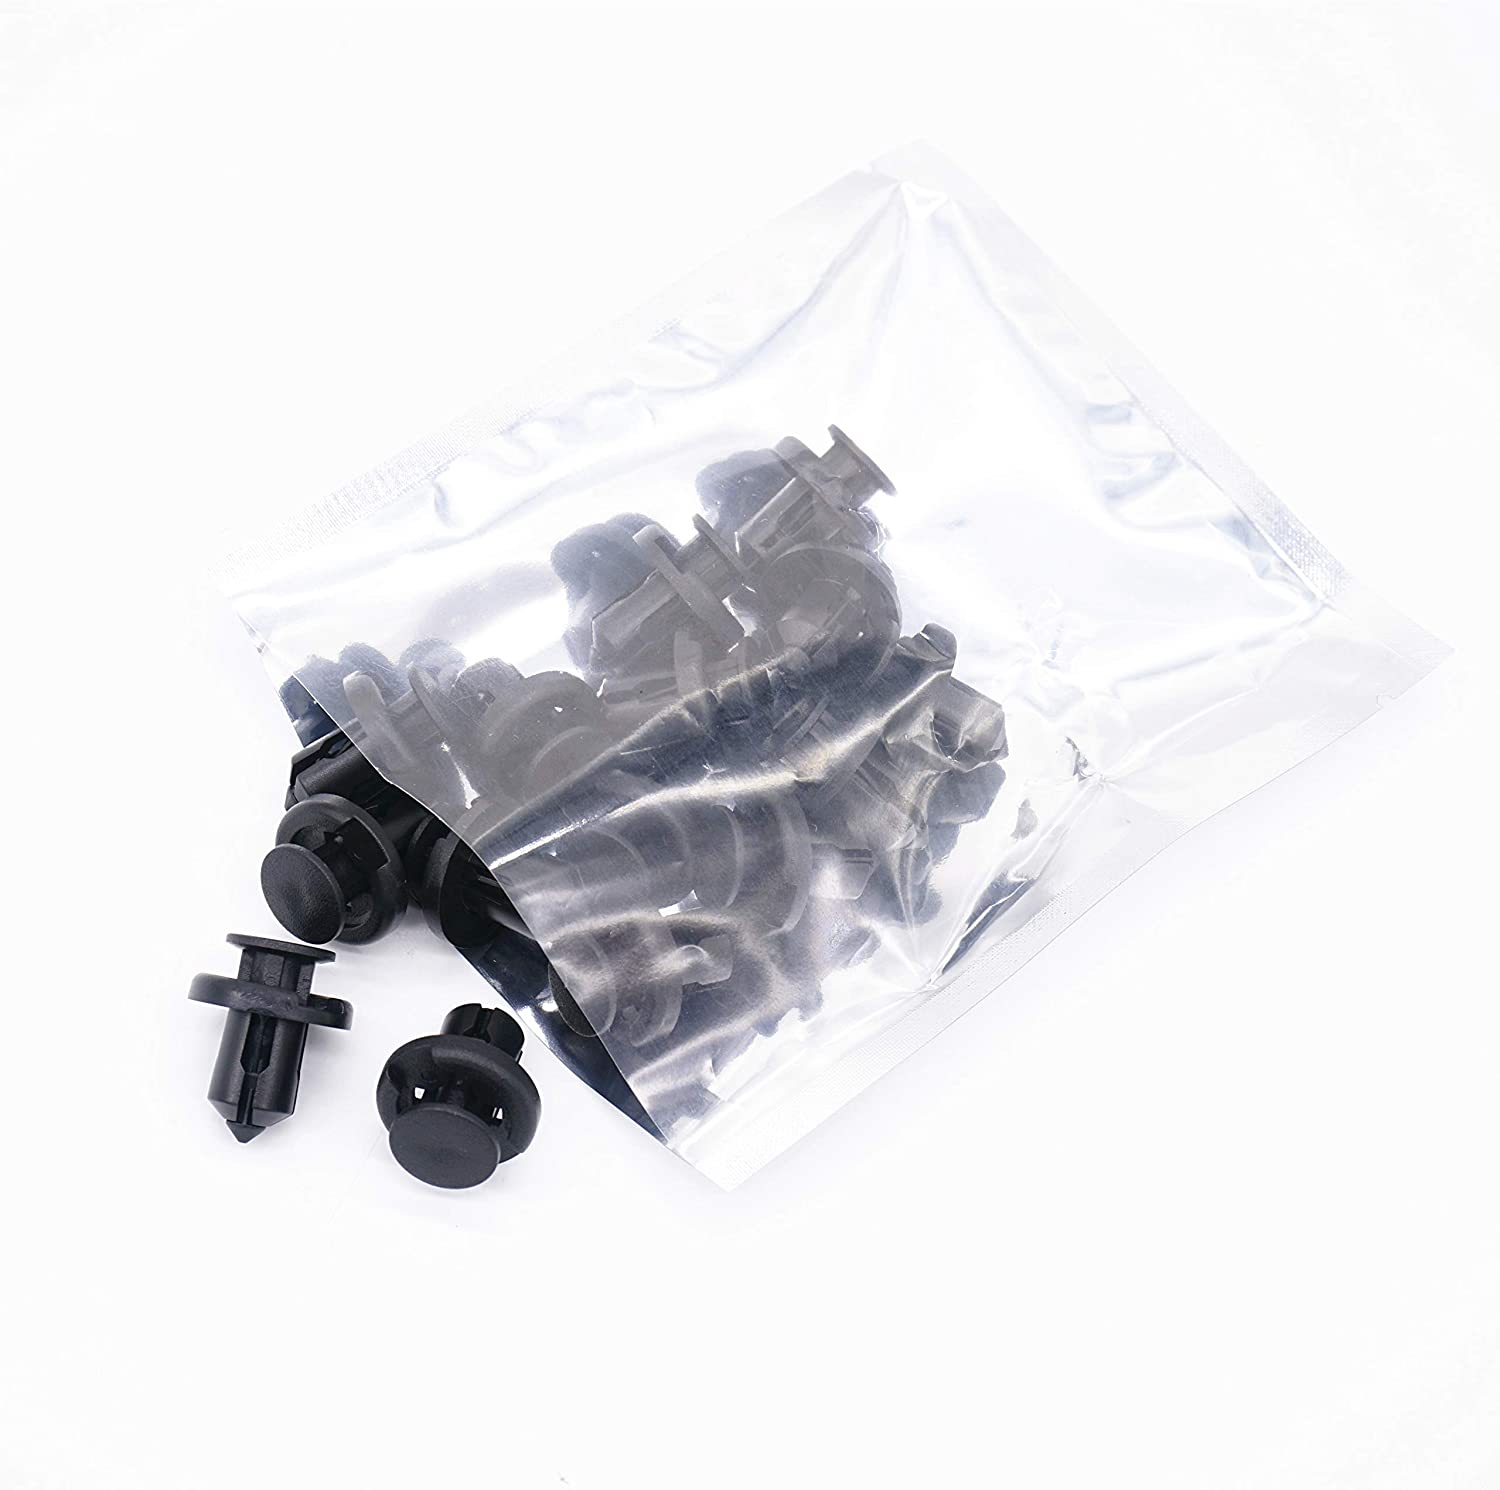 Replaces #91503-SZ3-003 91503SZ3003 Engine Splash Guard Shield Front Fender Inner Liner Clips Pins Fasteners Rivets for Honda Acura Odyssey CRV Accord Civic Front Bumper Cover Retainer Clips 15pcs Vautoparts